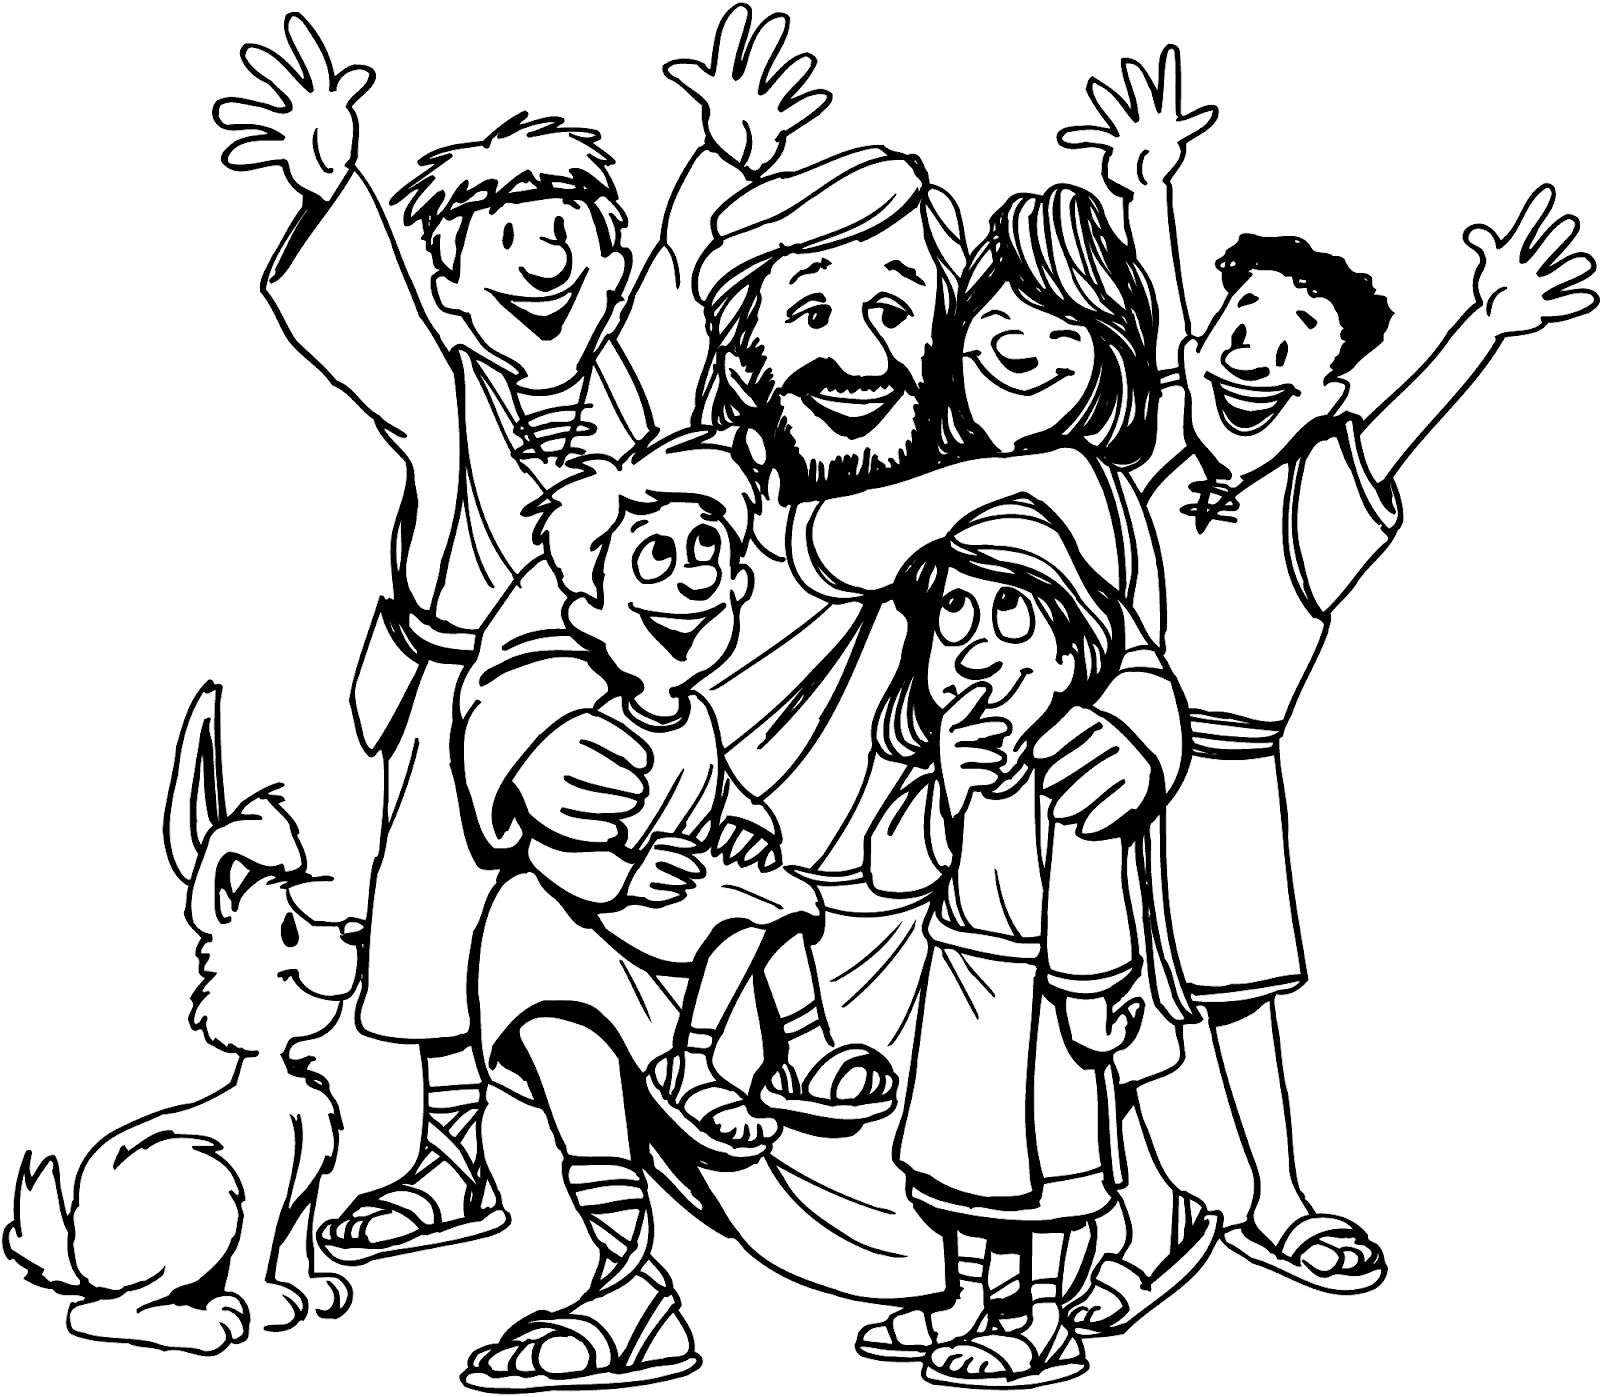 christian family coloring pages - photo#13